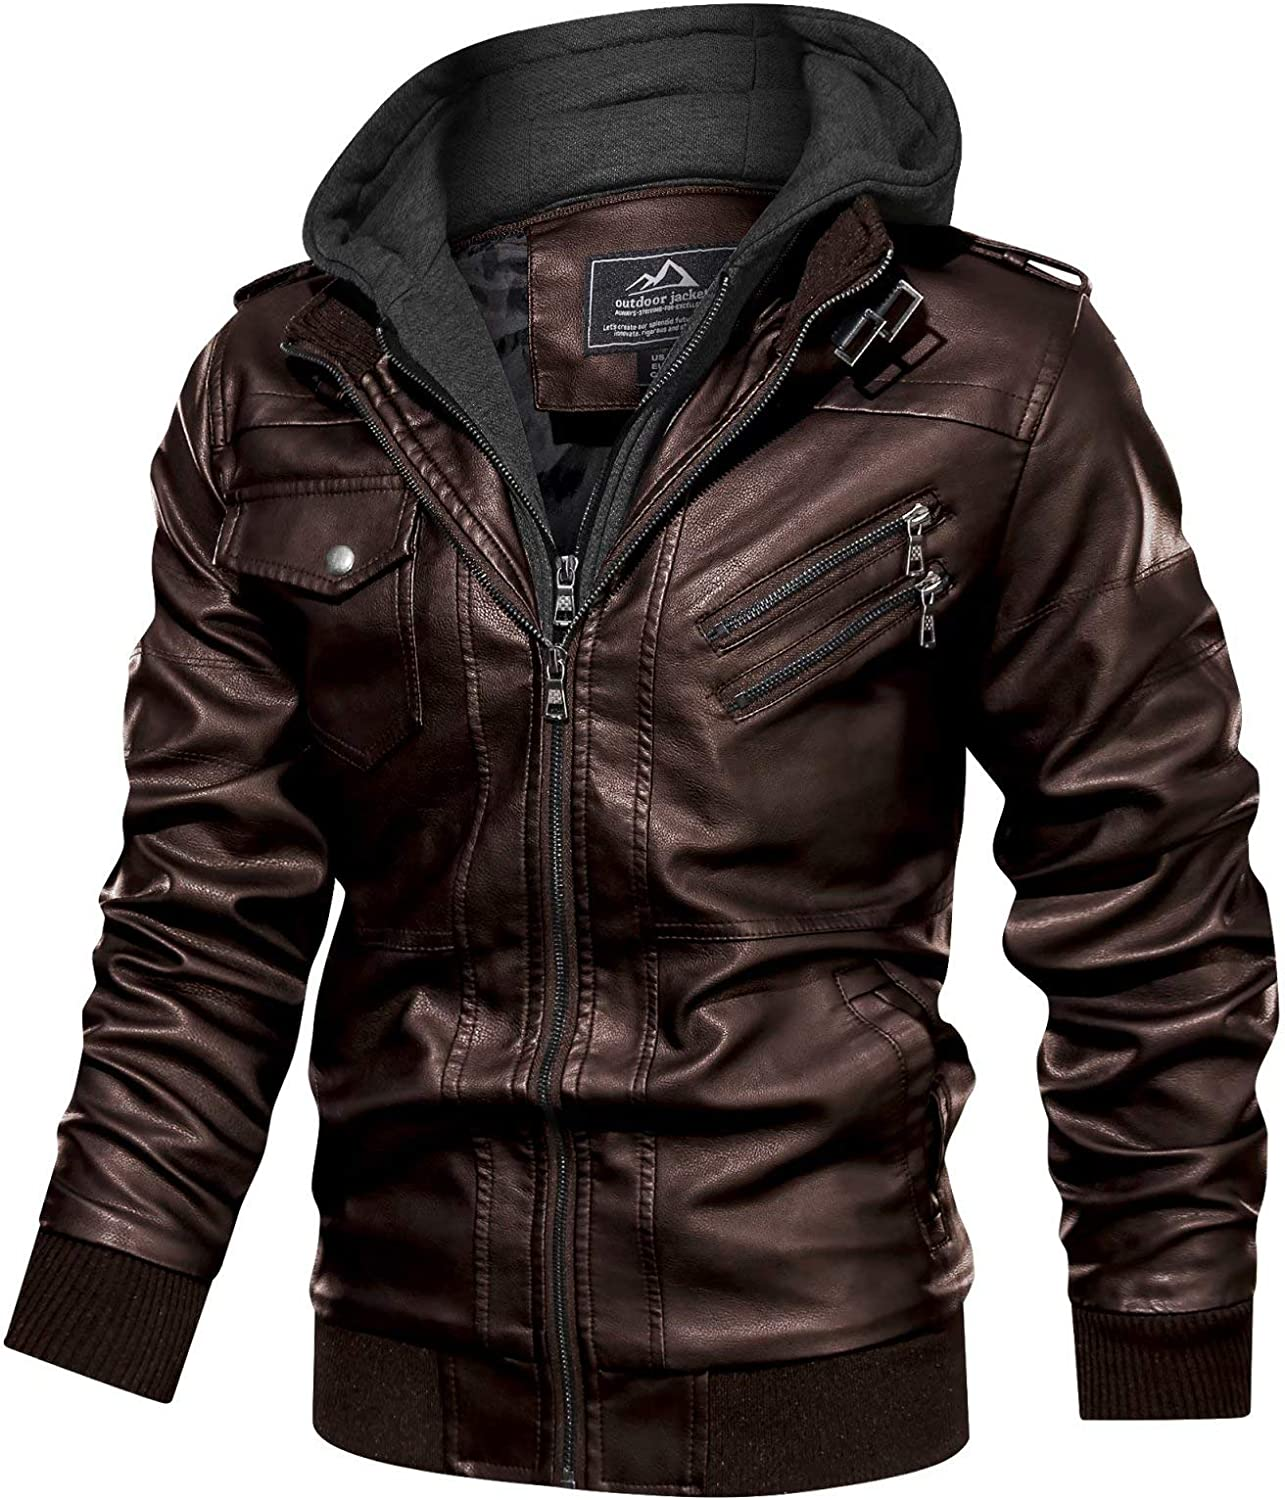 MAGCOMSEN Men's Stand Collar PU Faux Leather Jacket 6 Pockets Motorcycle Bomber Fall Winter Jacket with a Removable Hood